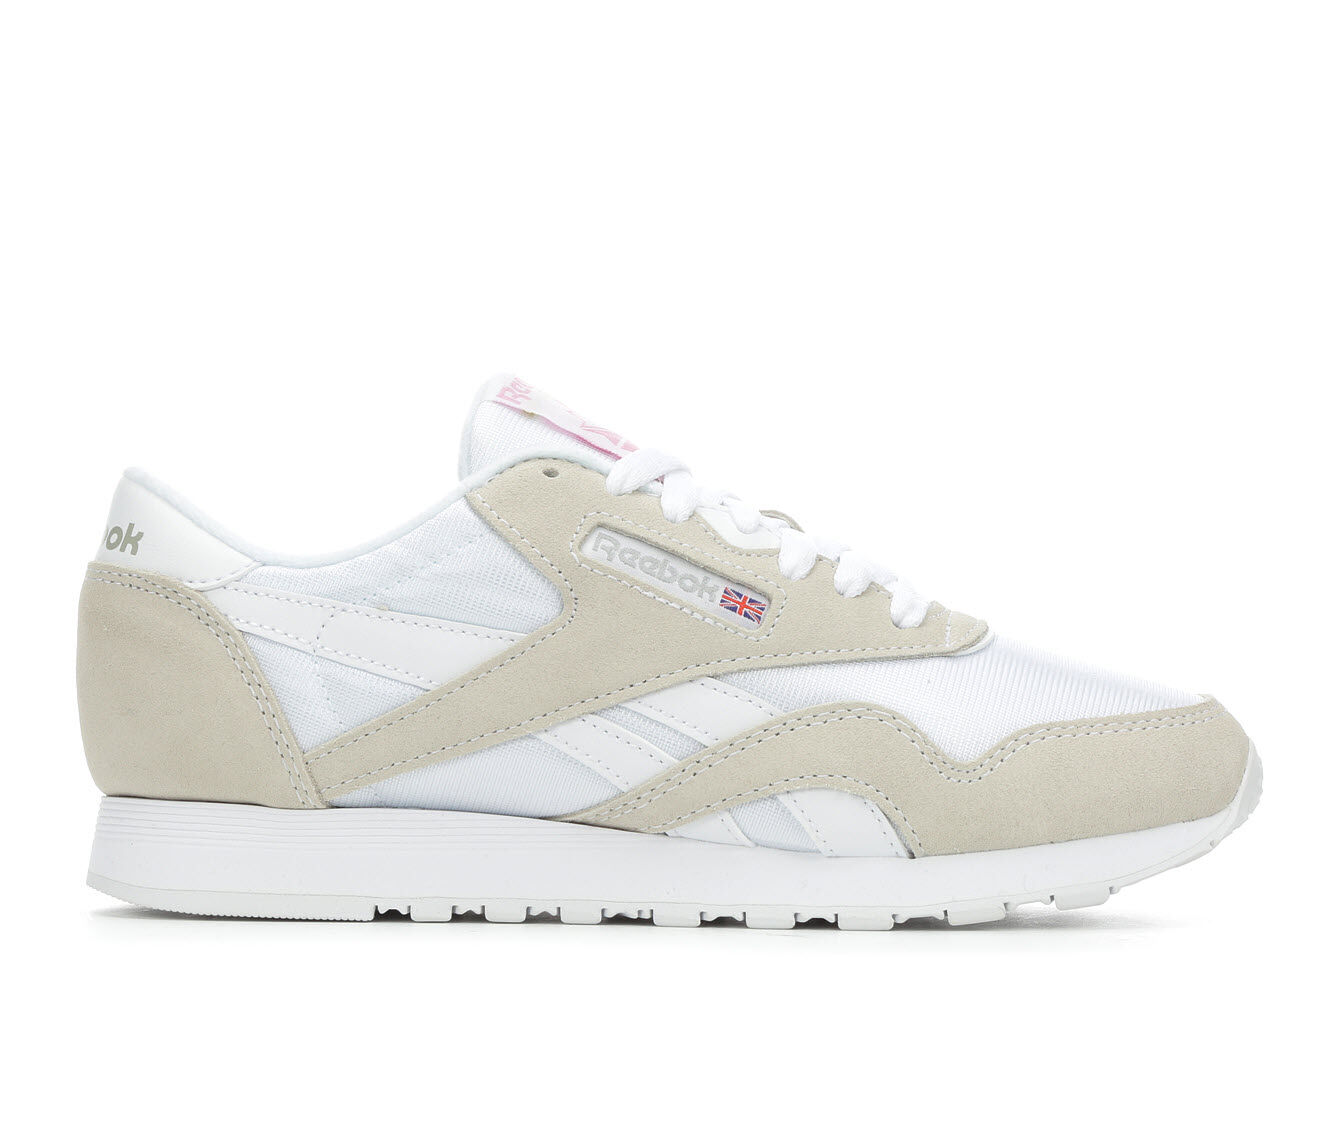 Buy Limited Edition Women's Reebok Classic Nylon Retro Sneakers White/Grey